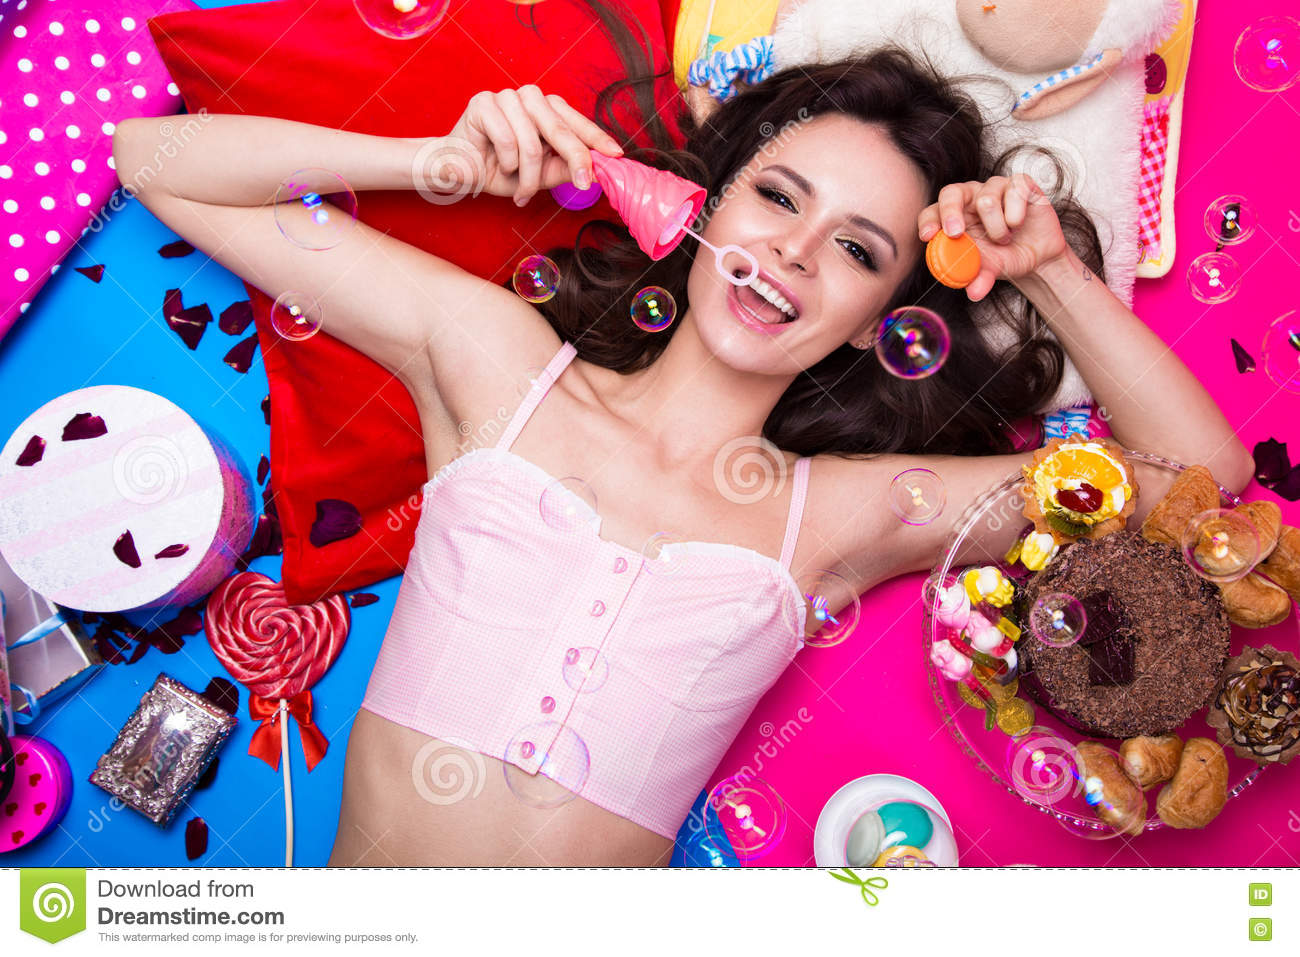 Beautiful fresh girl doll with soap bubbles lying on bright backgrounds surrounded by sweets, cosmetics and gifts